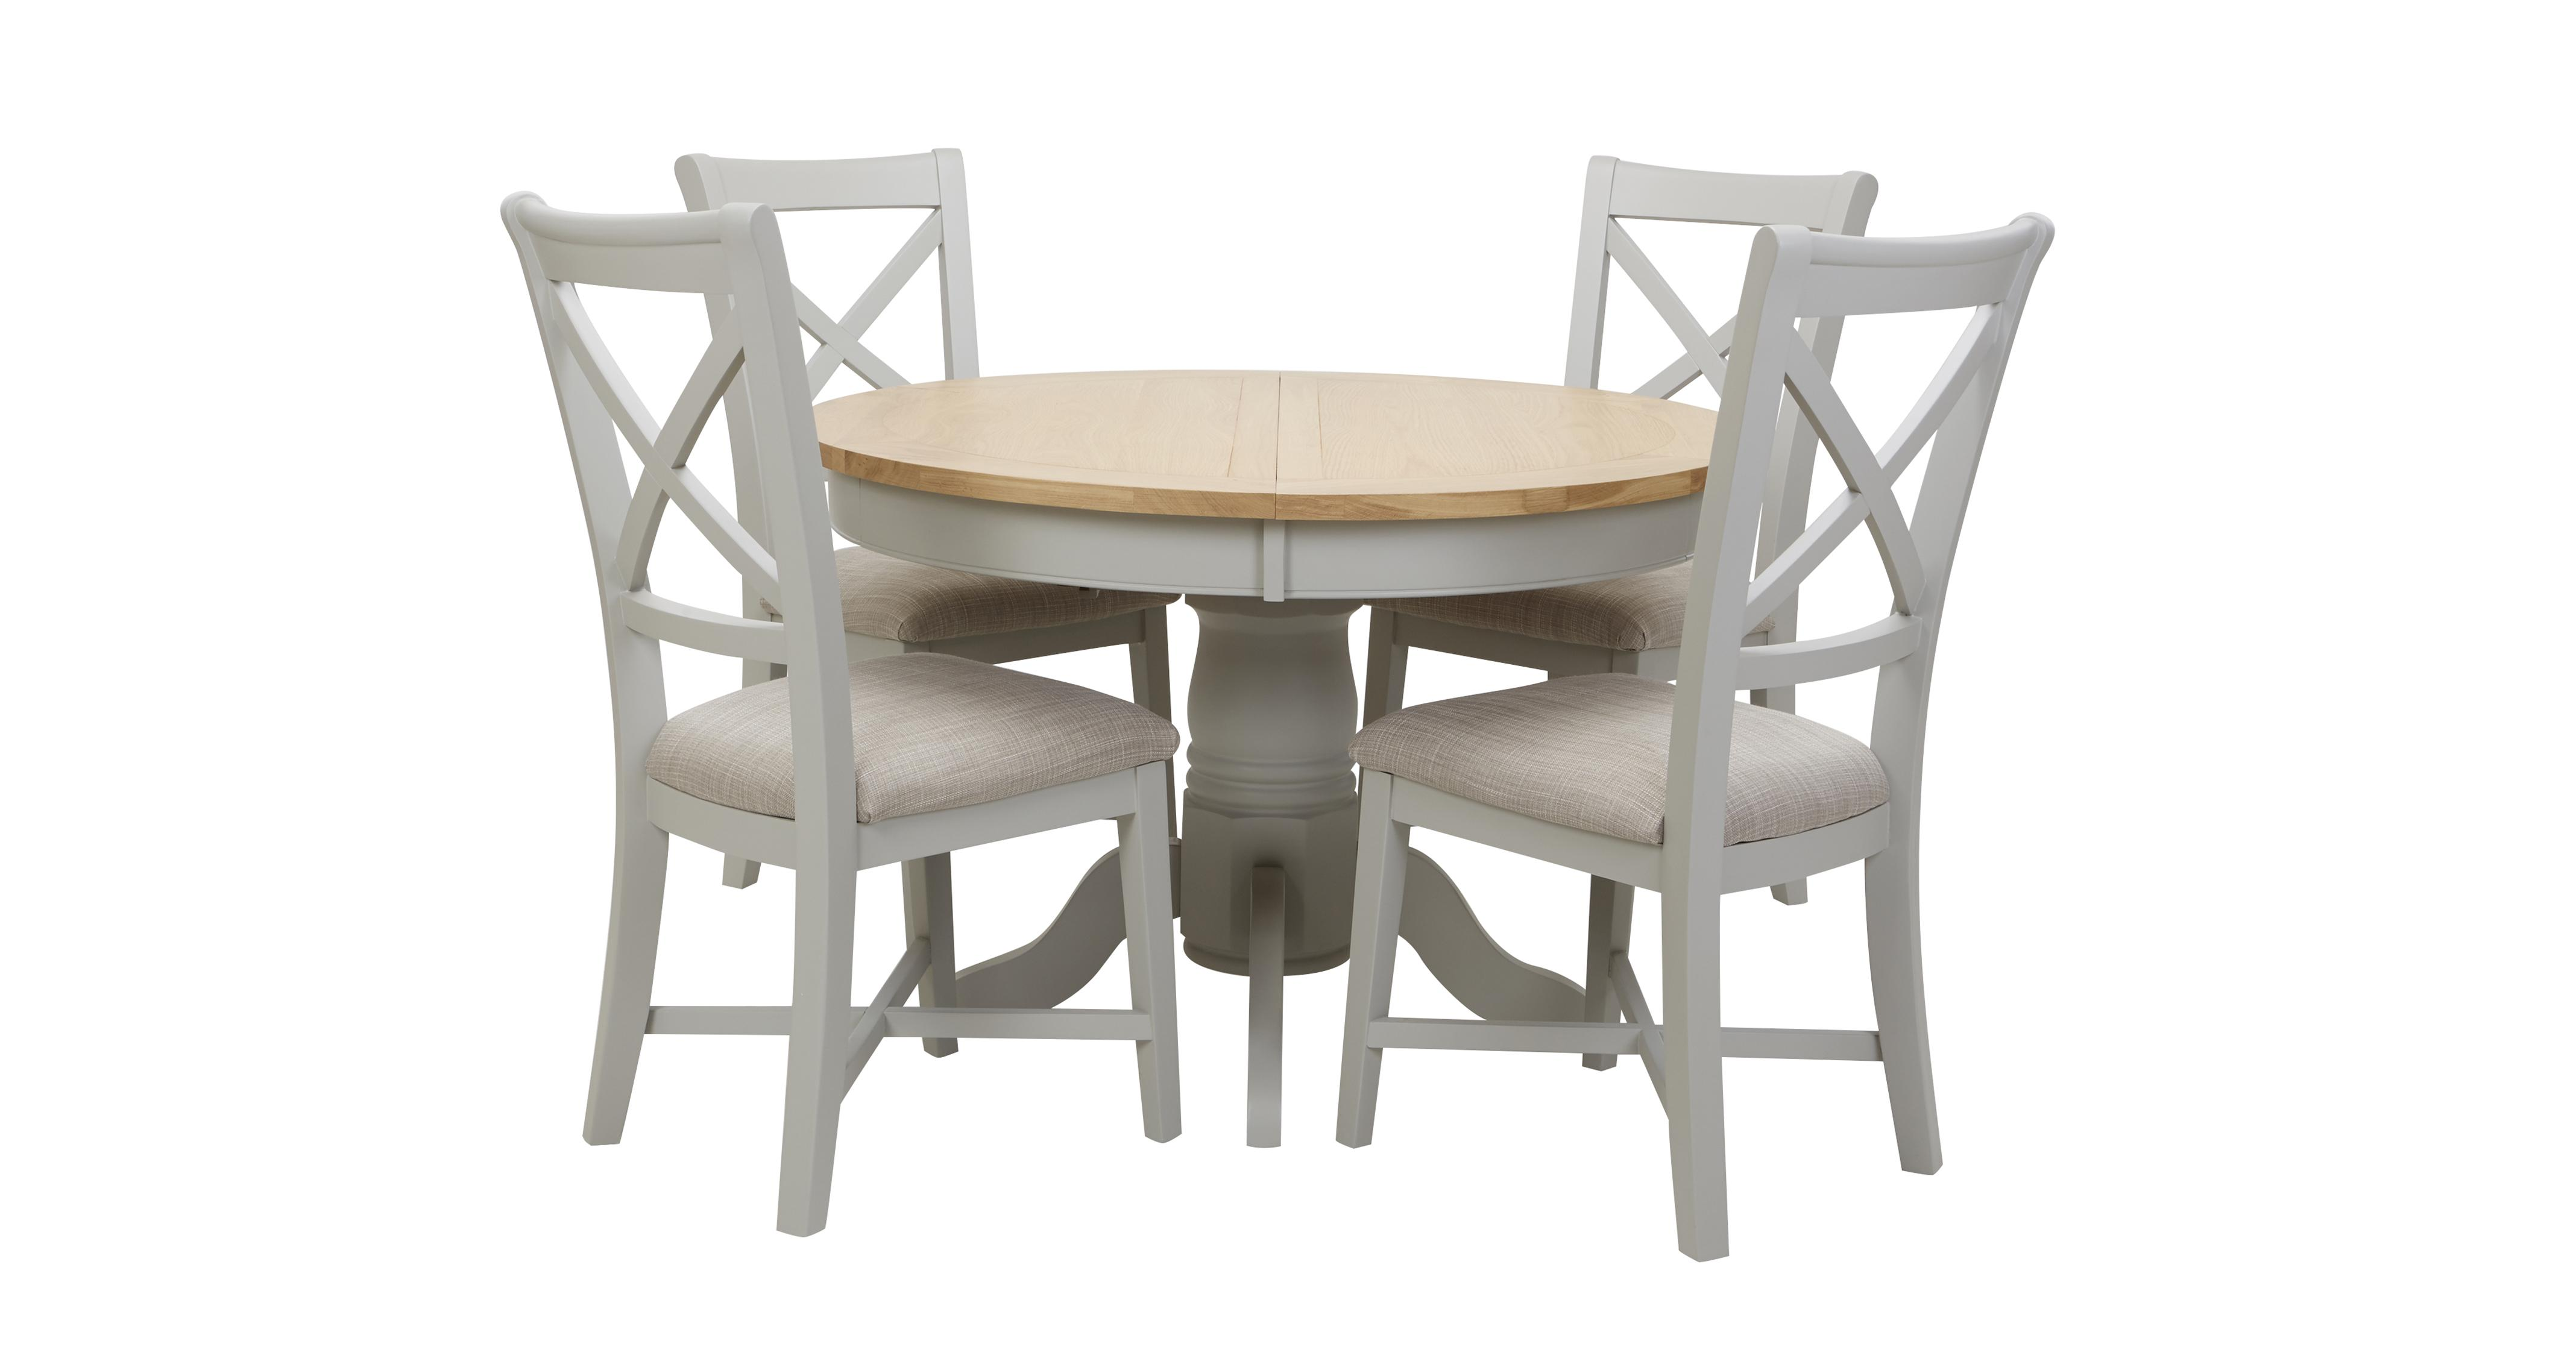 set of 4 dining chairs ebay chair covers and sashes harbour round extending table dfs ireland